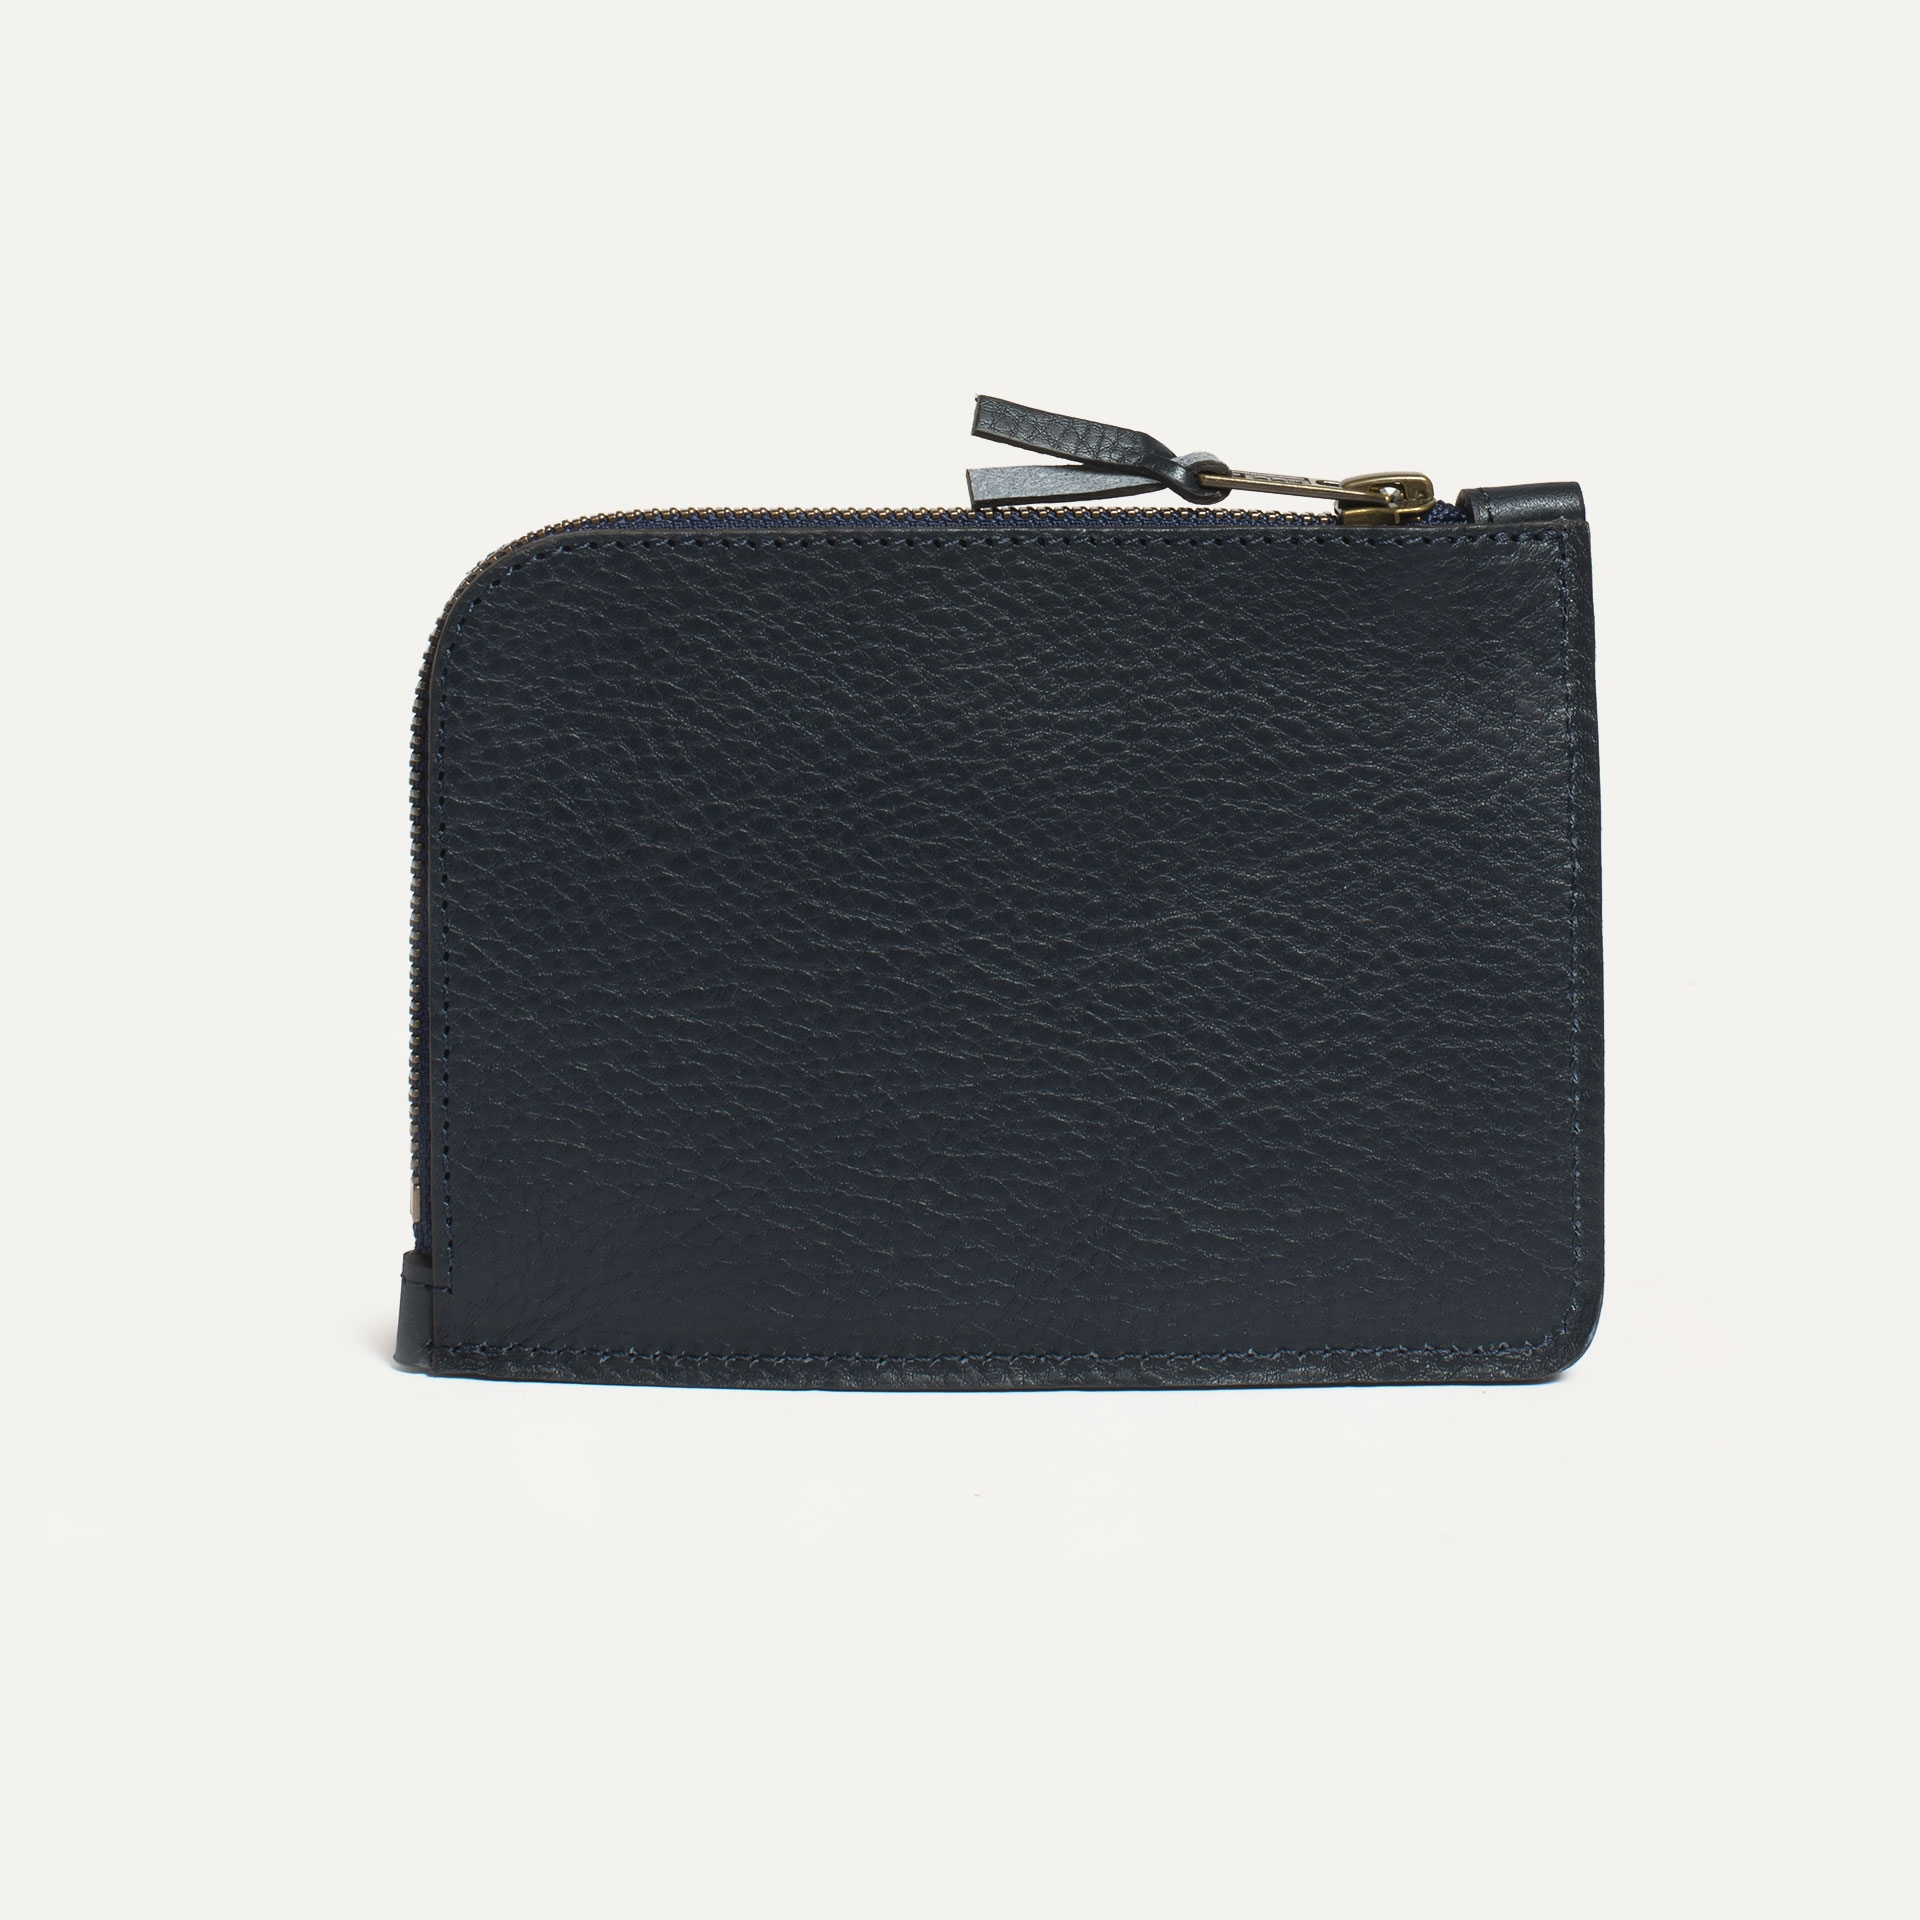 Daron zippered purse / XL - Navy Blue (image n°2)